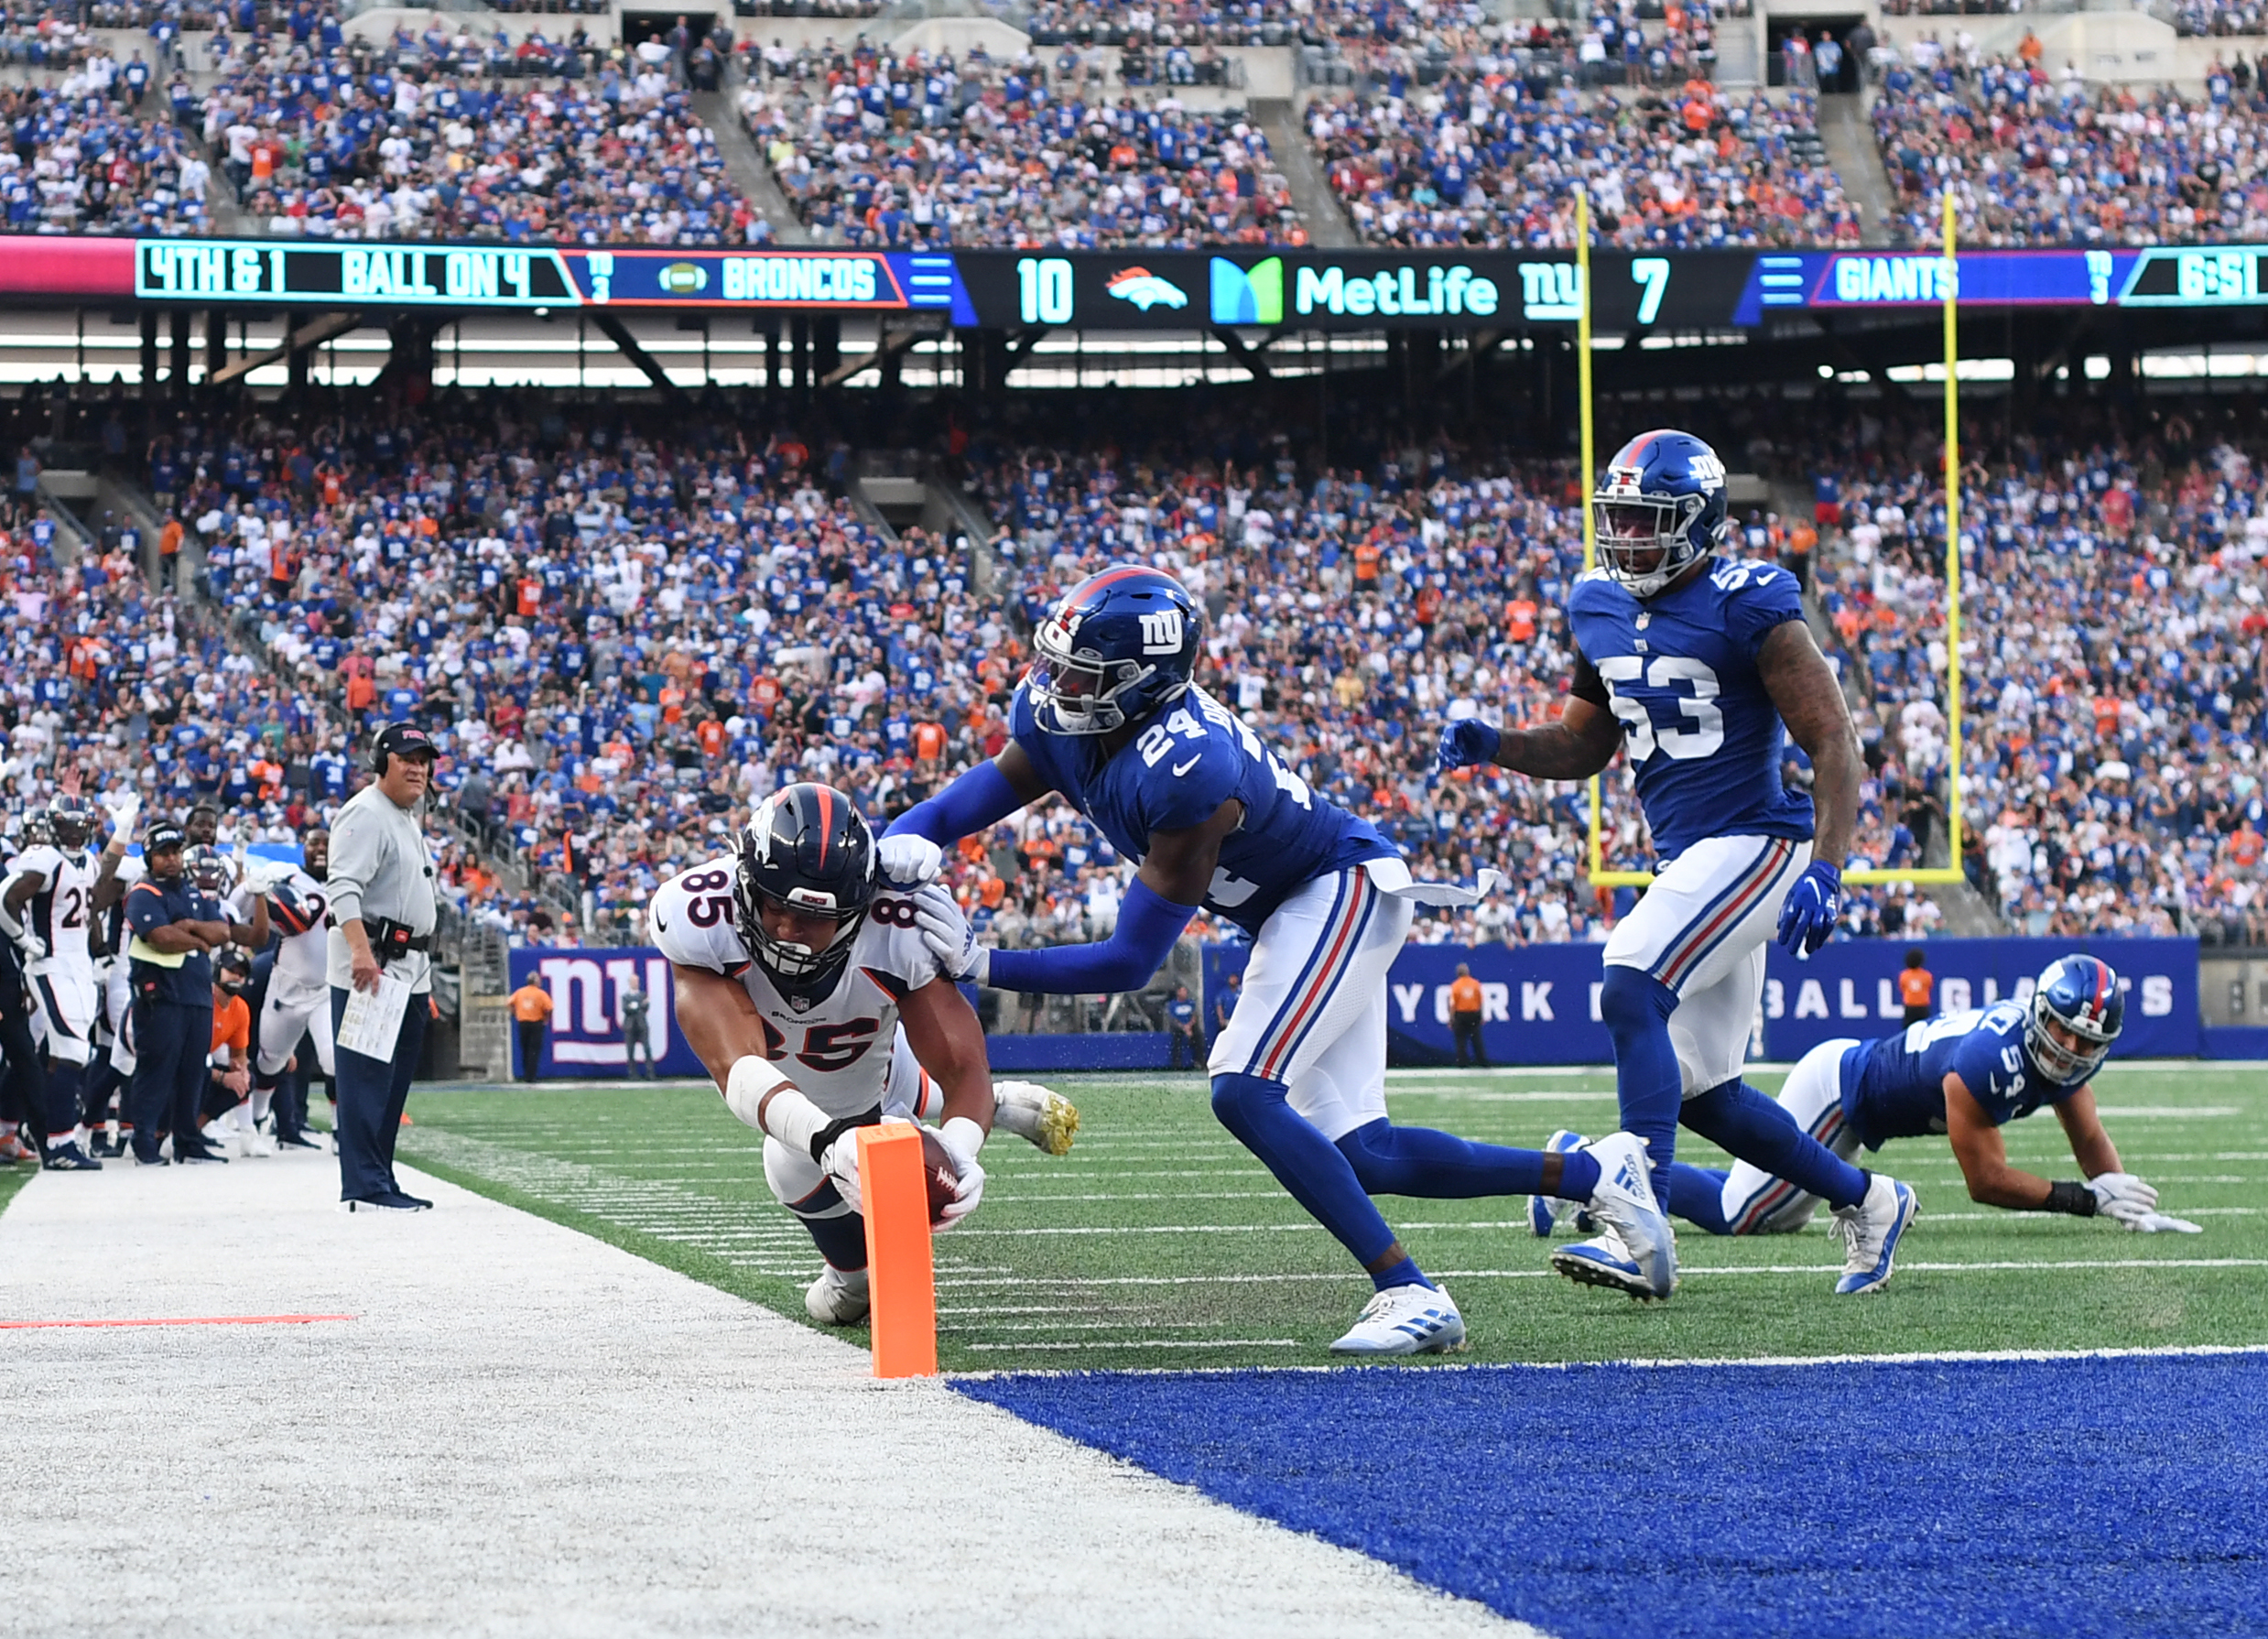 Giants Vaunted D Falters, Fails to Get Off Field Vs. Broncos